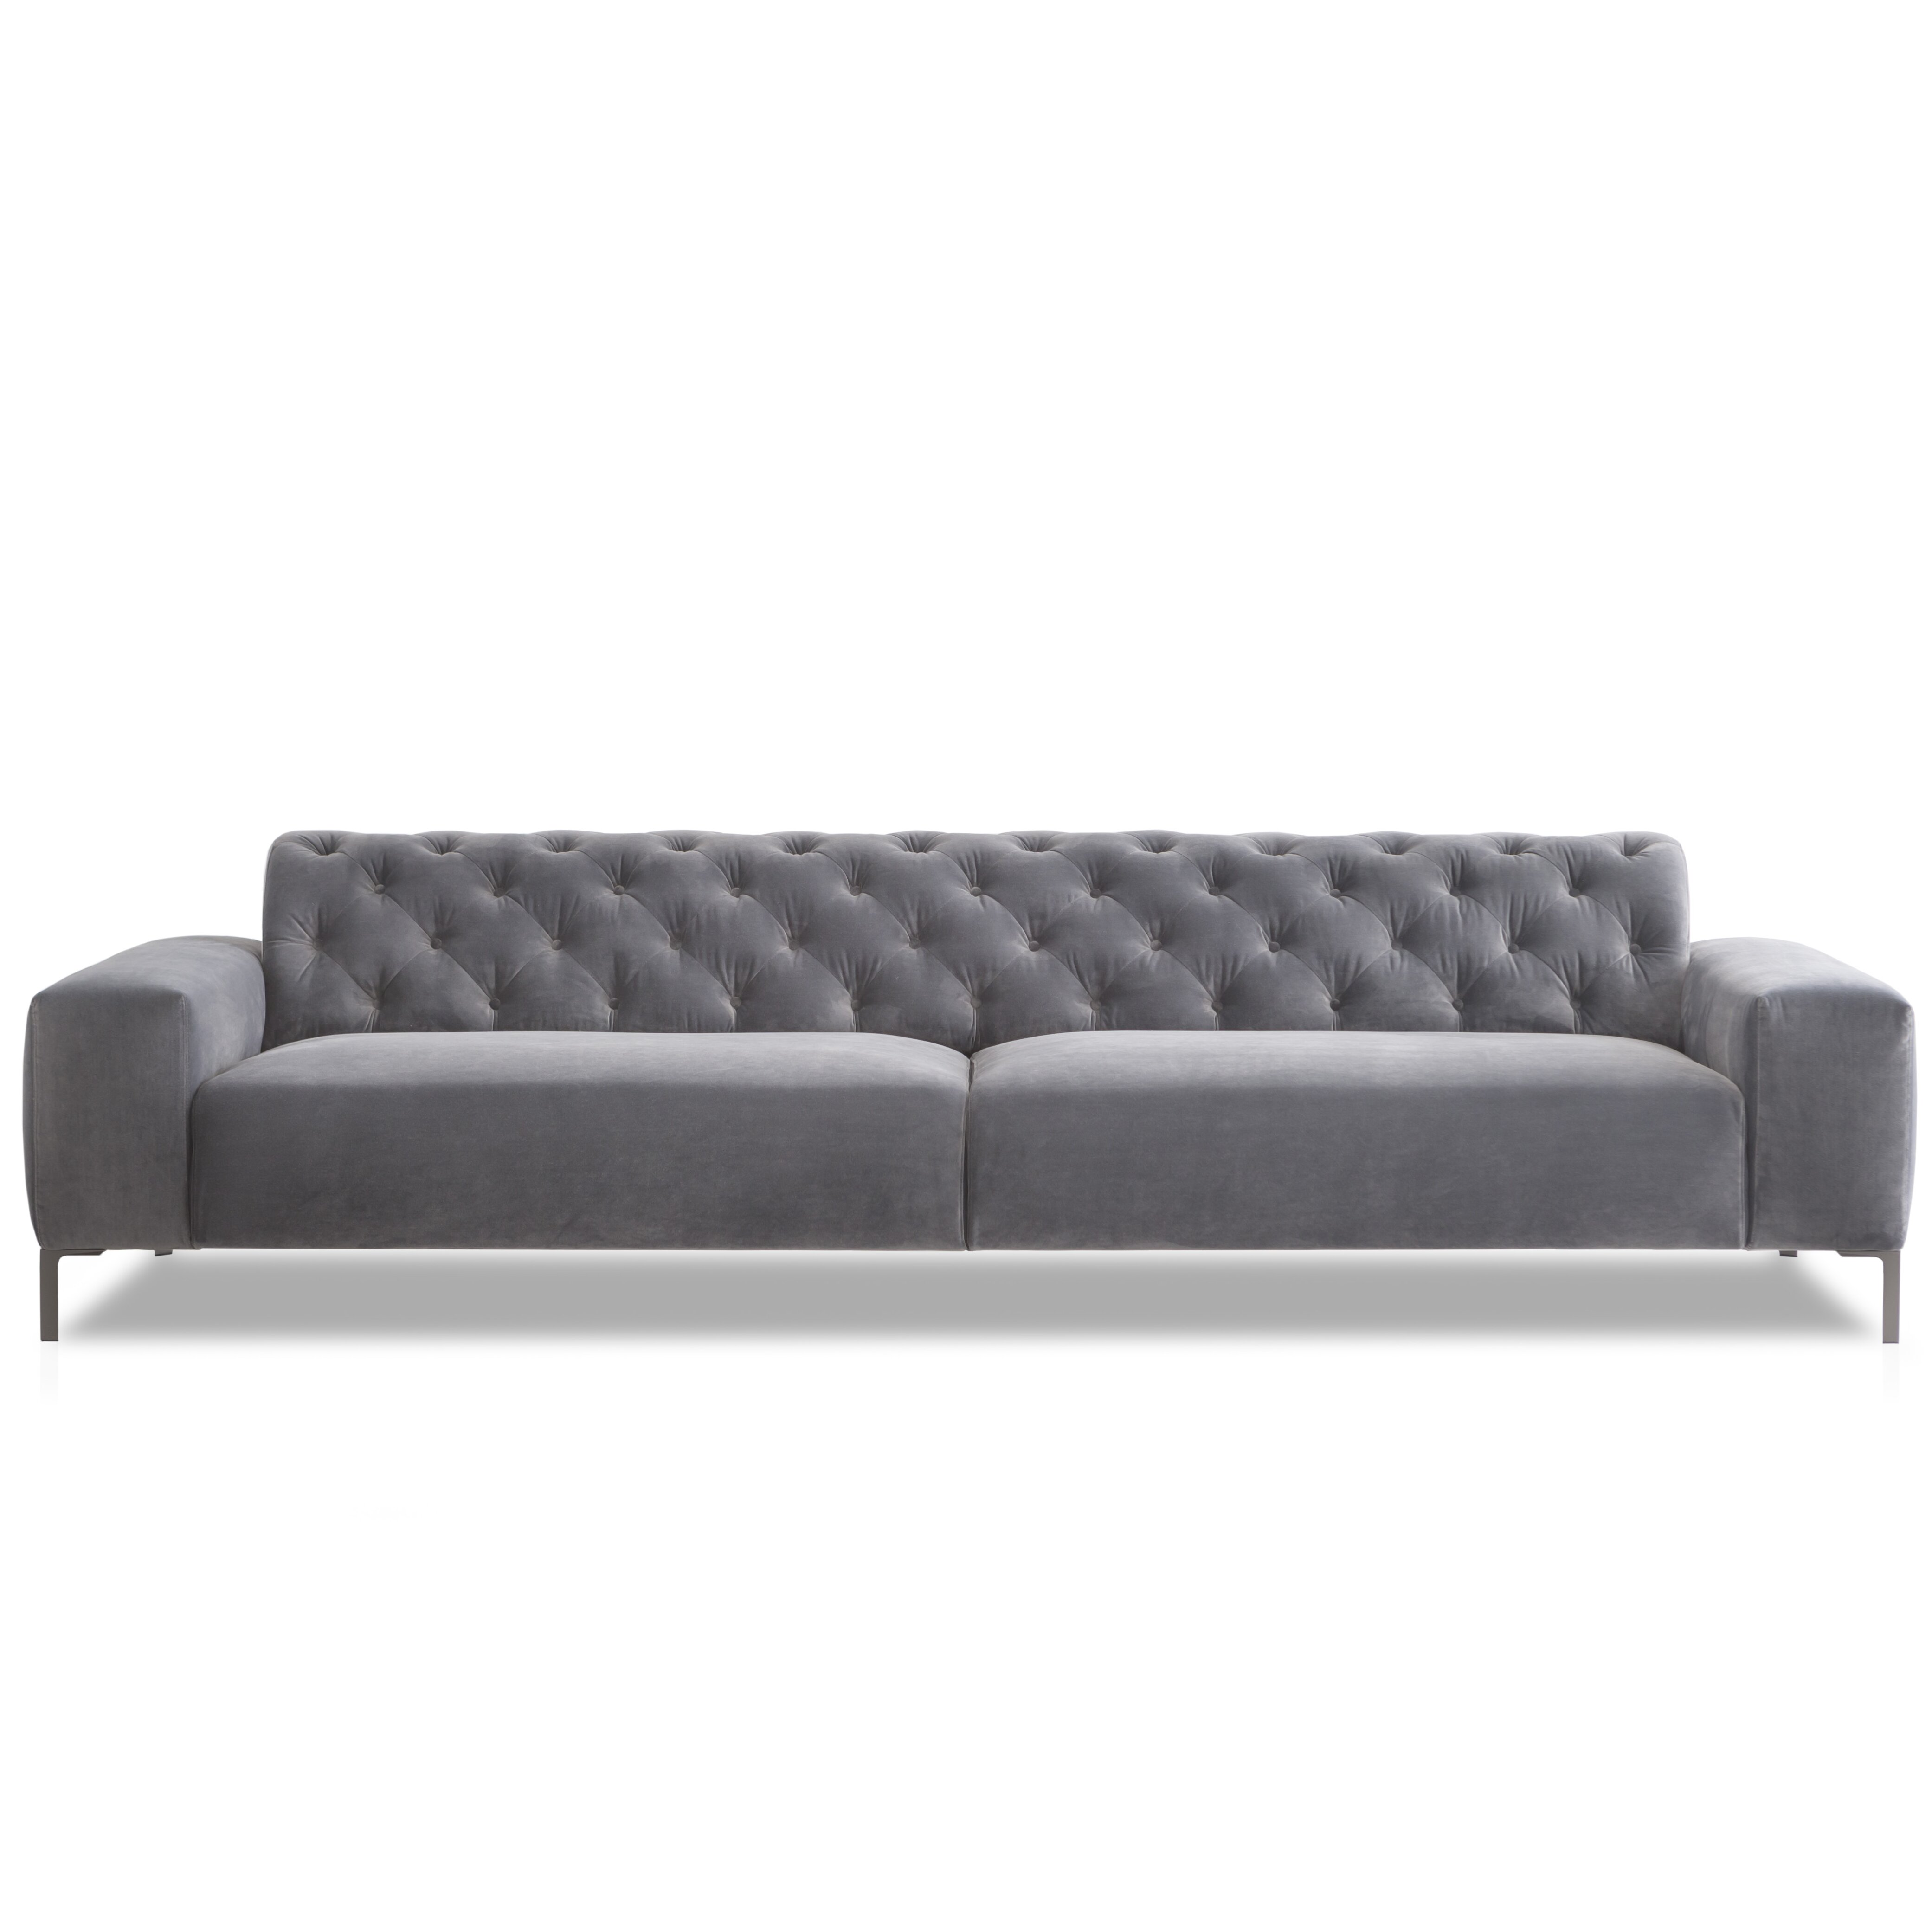 Pianca Usa Boston Capitonn With Tufted Back Sofa